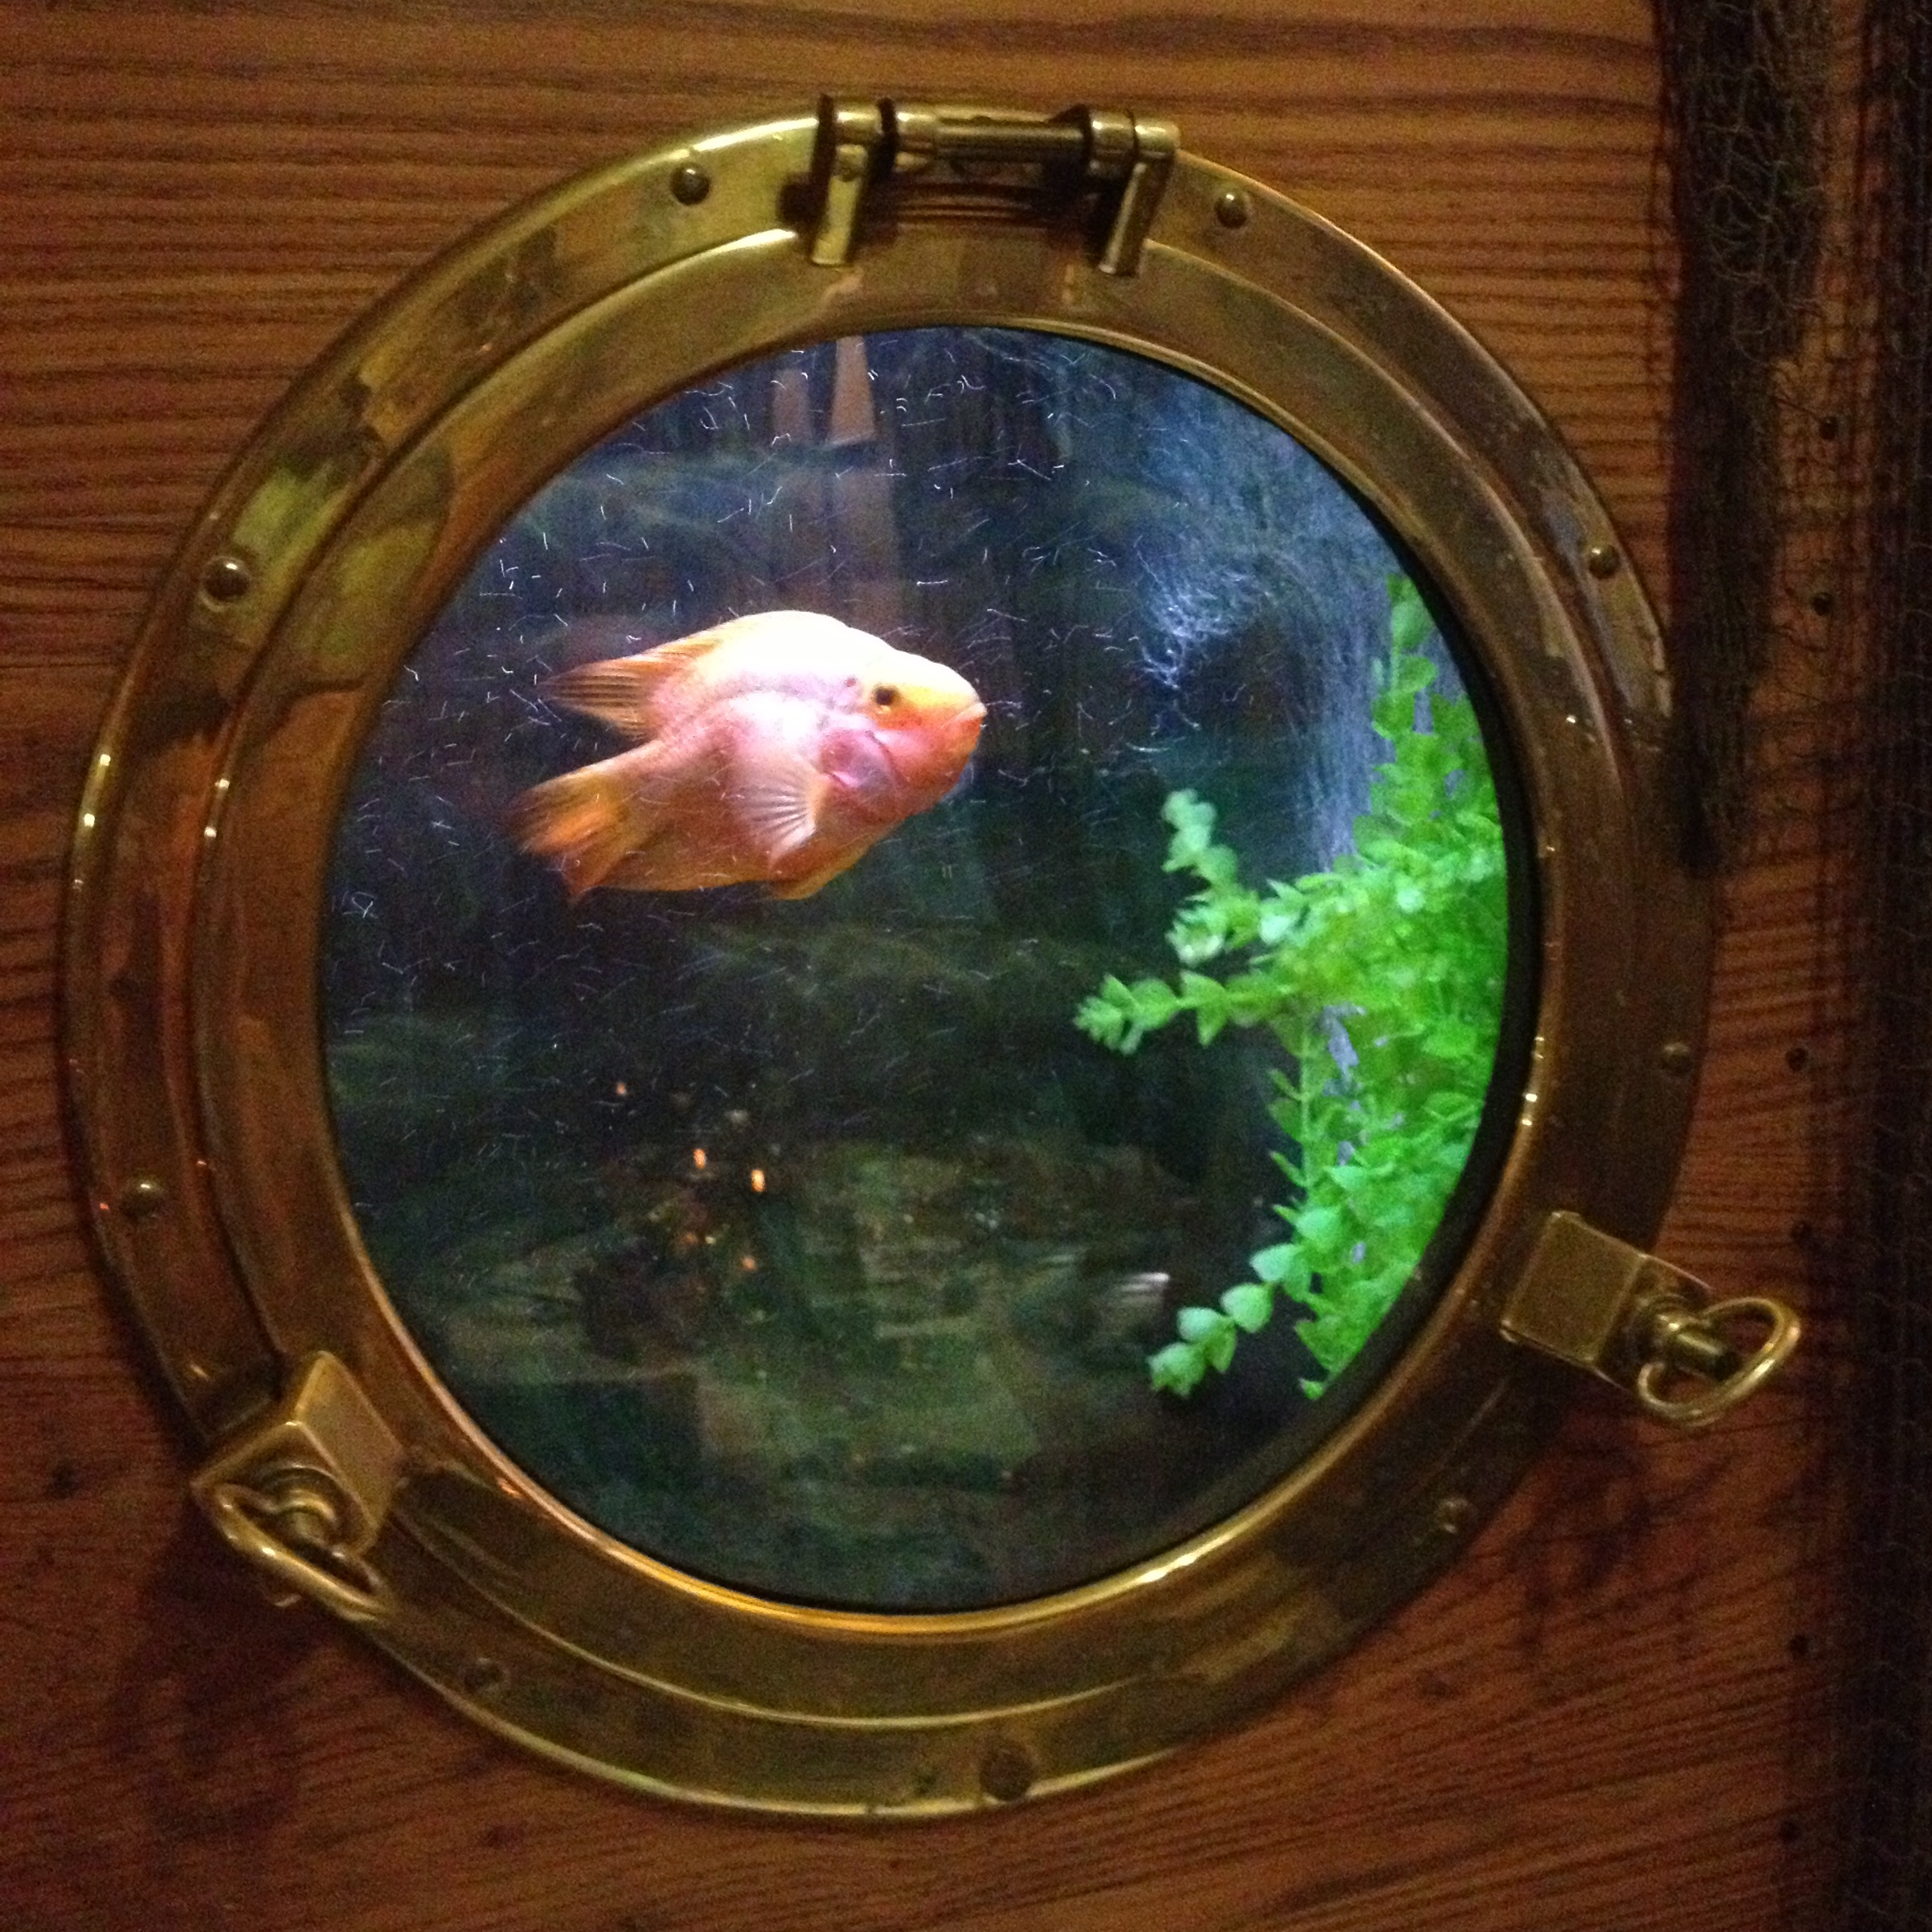 A fish through the porthole of The Lobster Pot - kenningtonrunoff.com